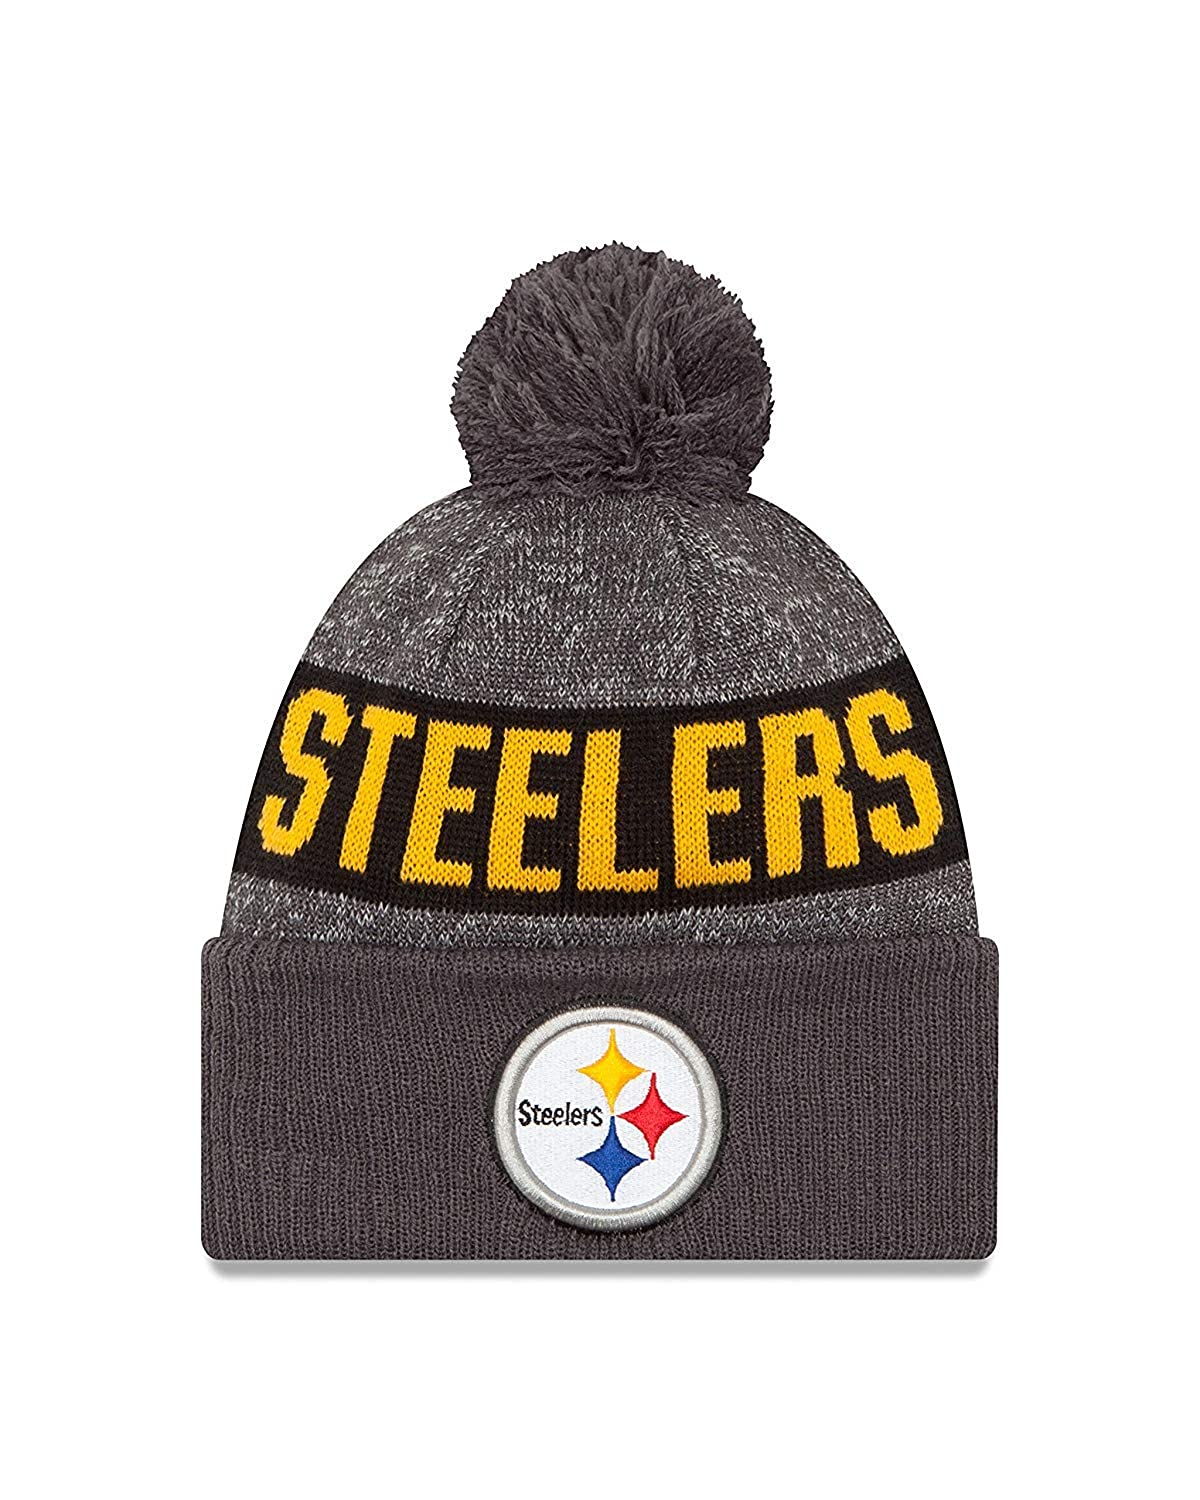 3fbe8bdf8 official photos acbd4 542be new era nfl pittsburgh steelers sideline ...